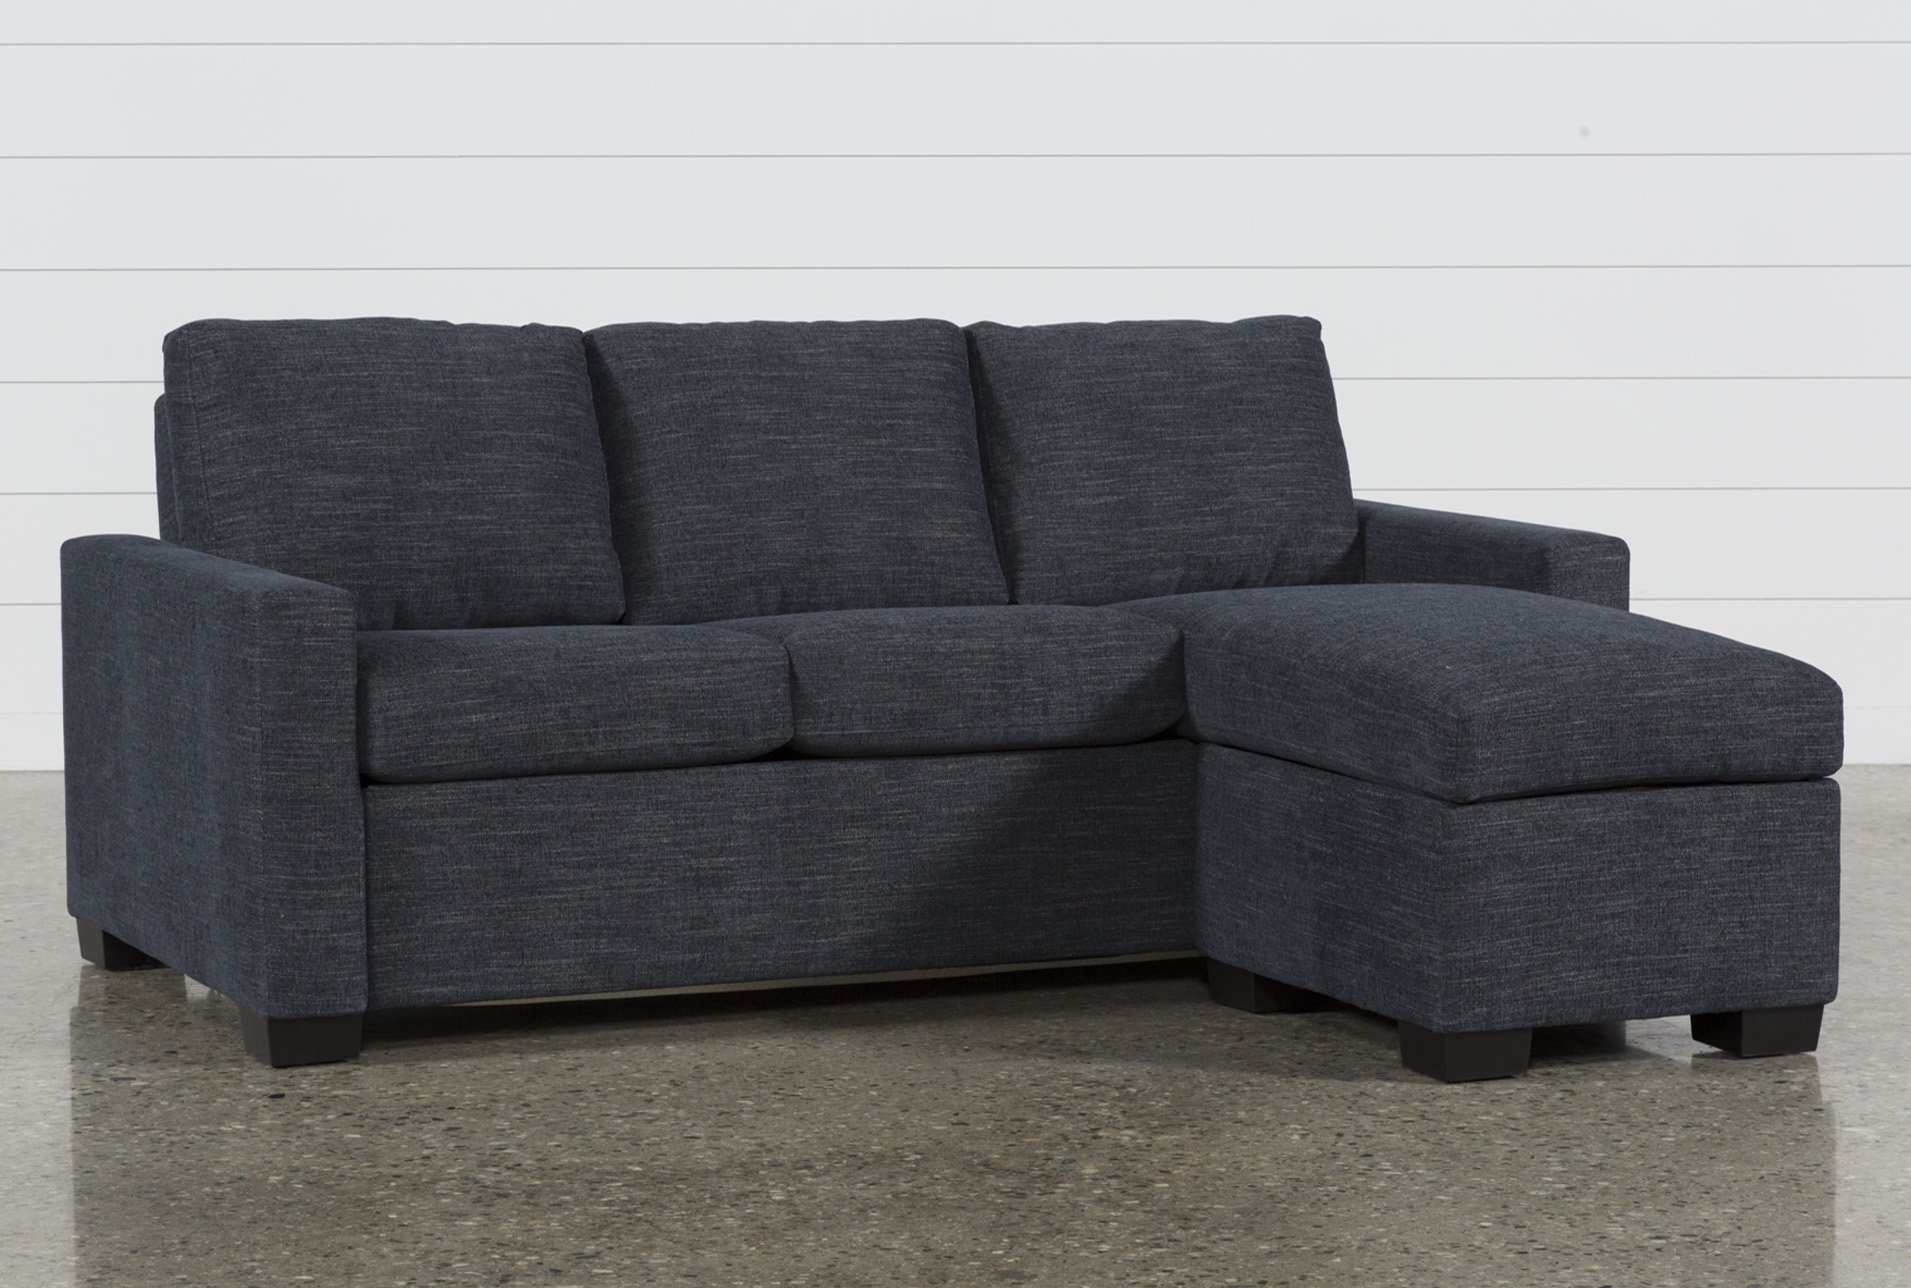 Mackenzie Denim Queen Plus Sofa Sleeper W/ Storage Chaise | Living